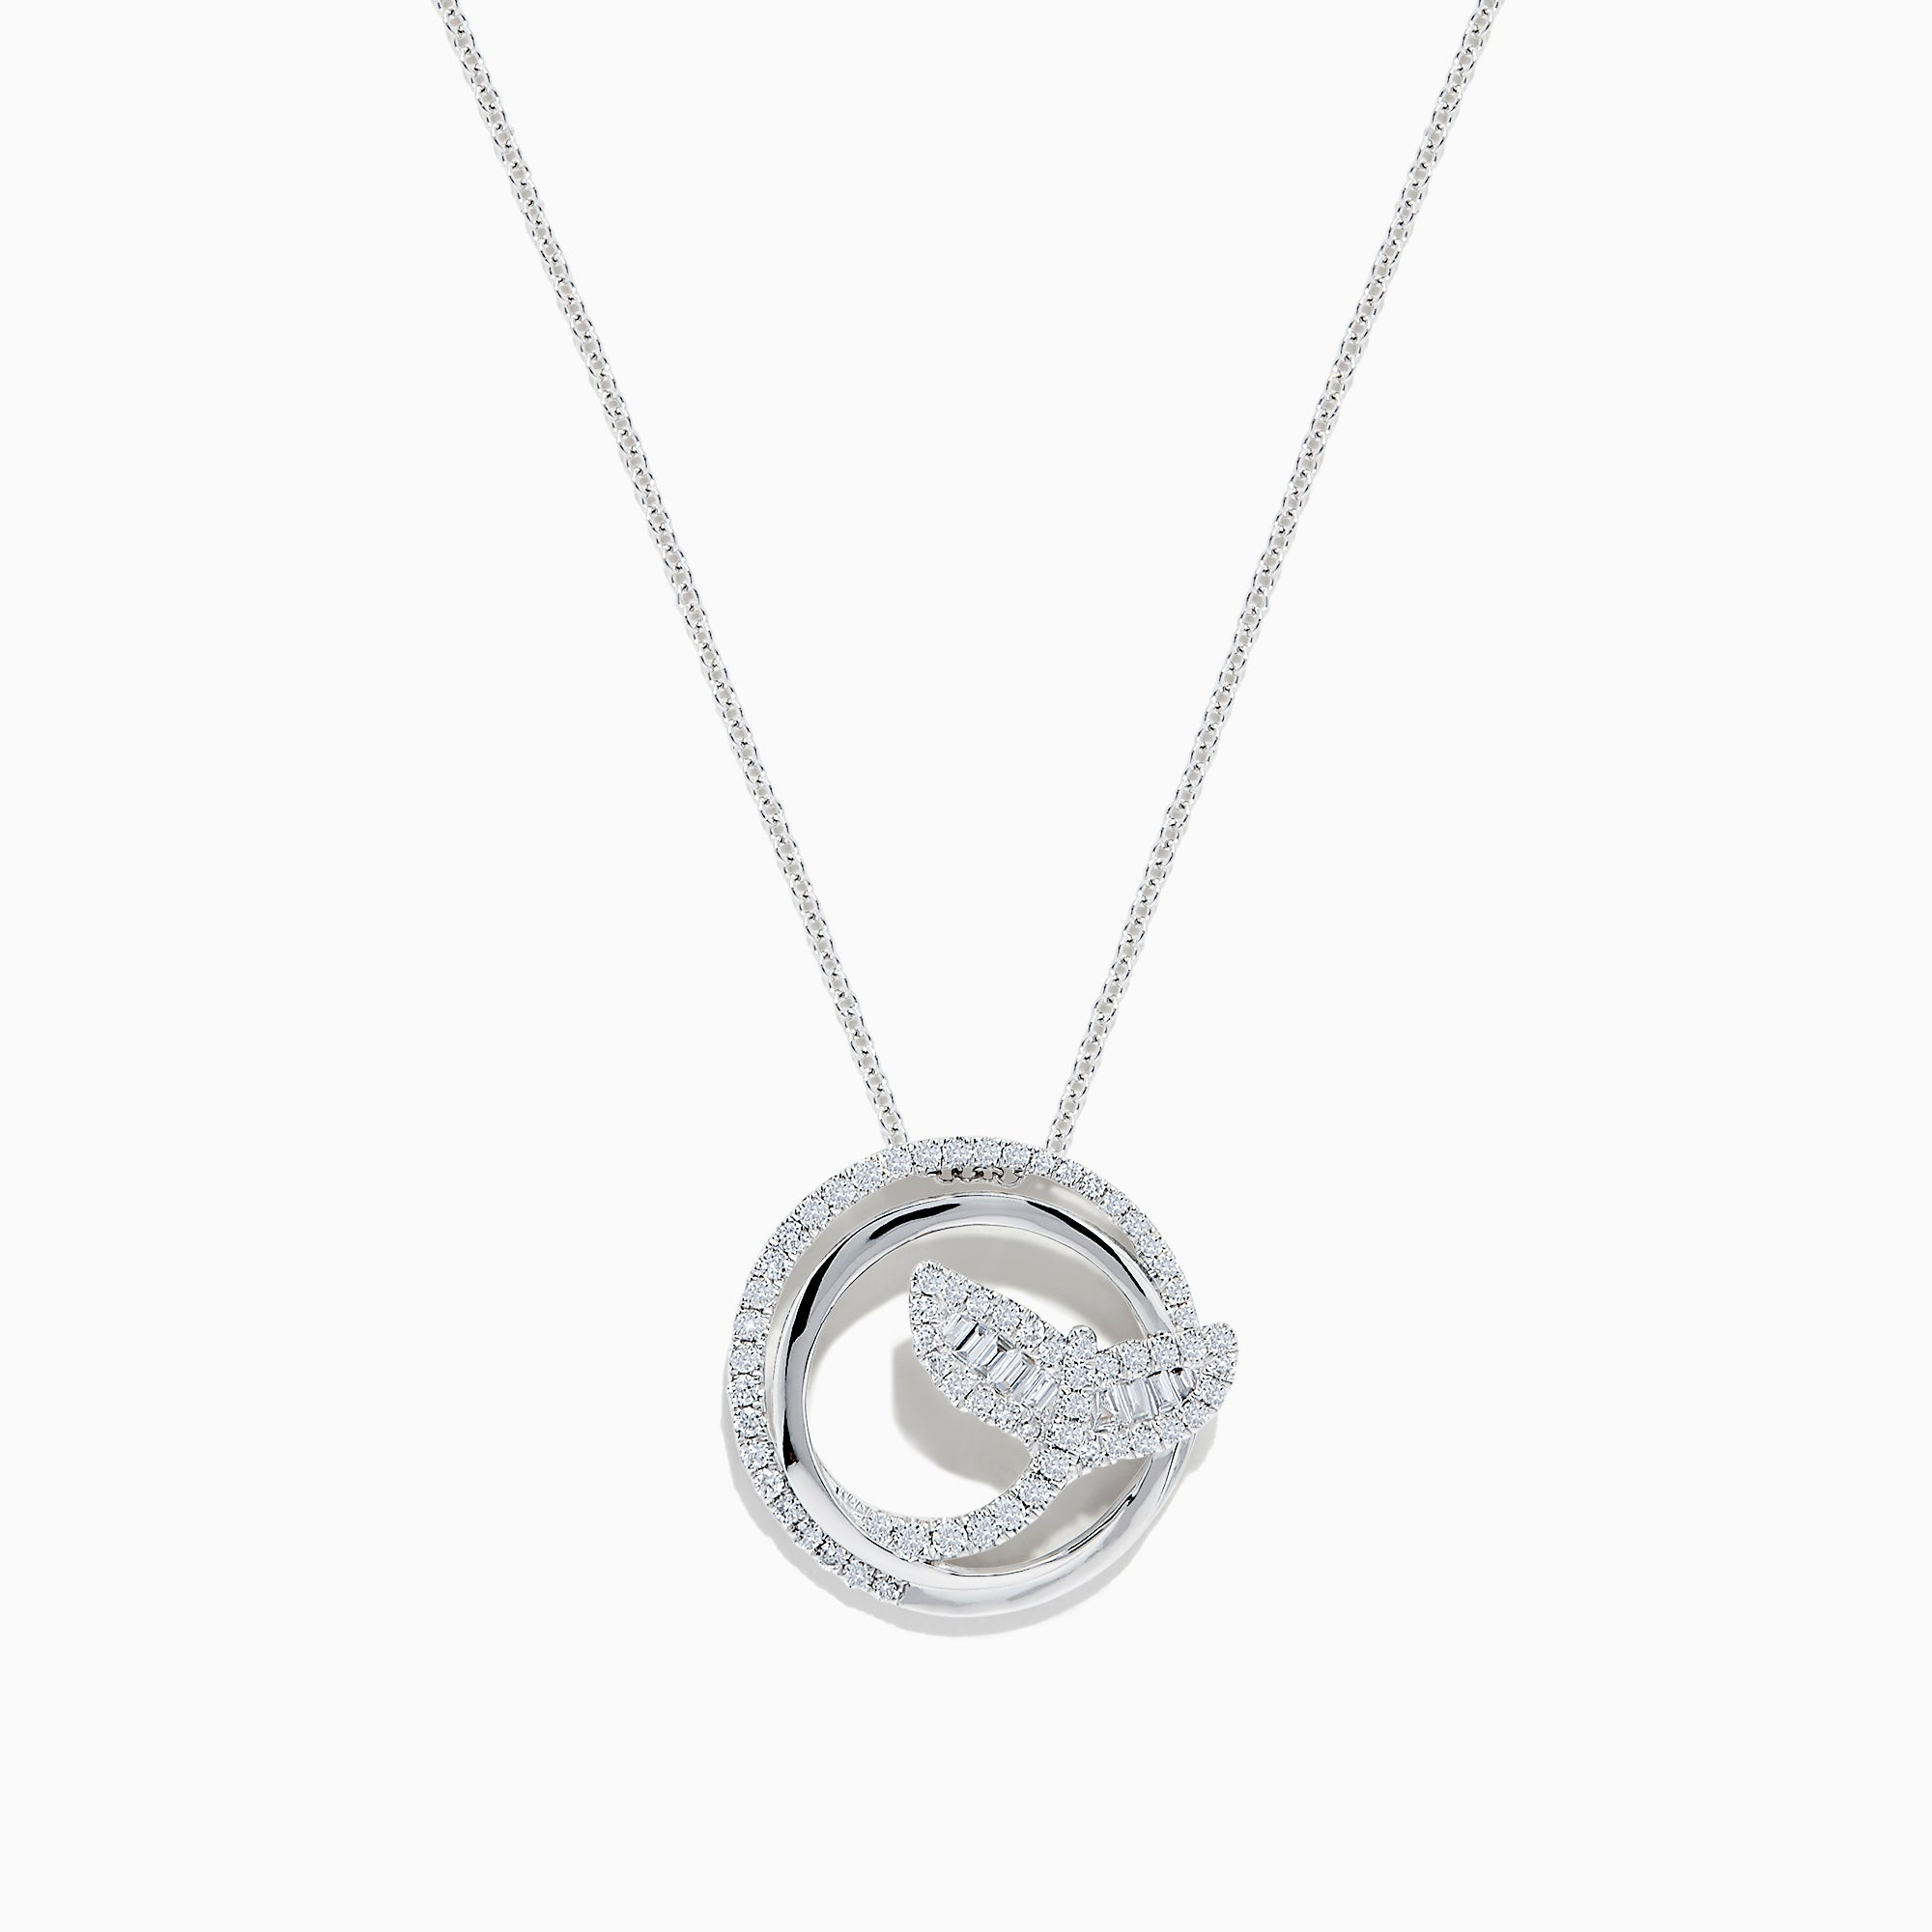 Effy Seaside 14K White Gold Diamond Whale's Tail Pendant, 0.49 TCW